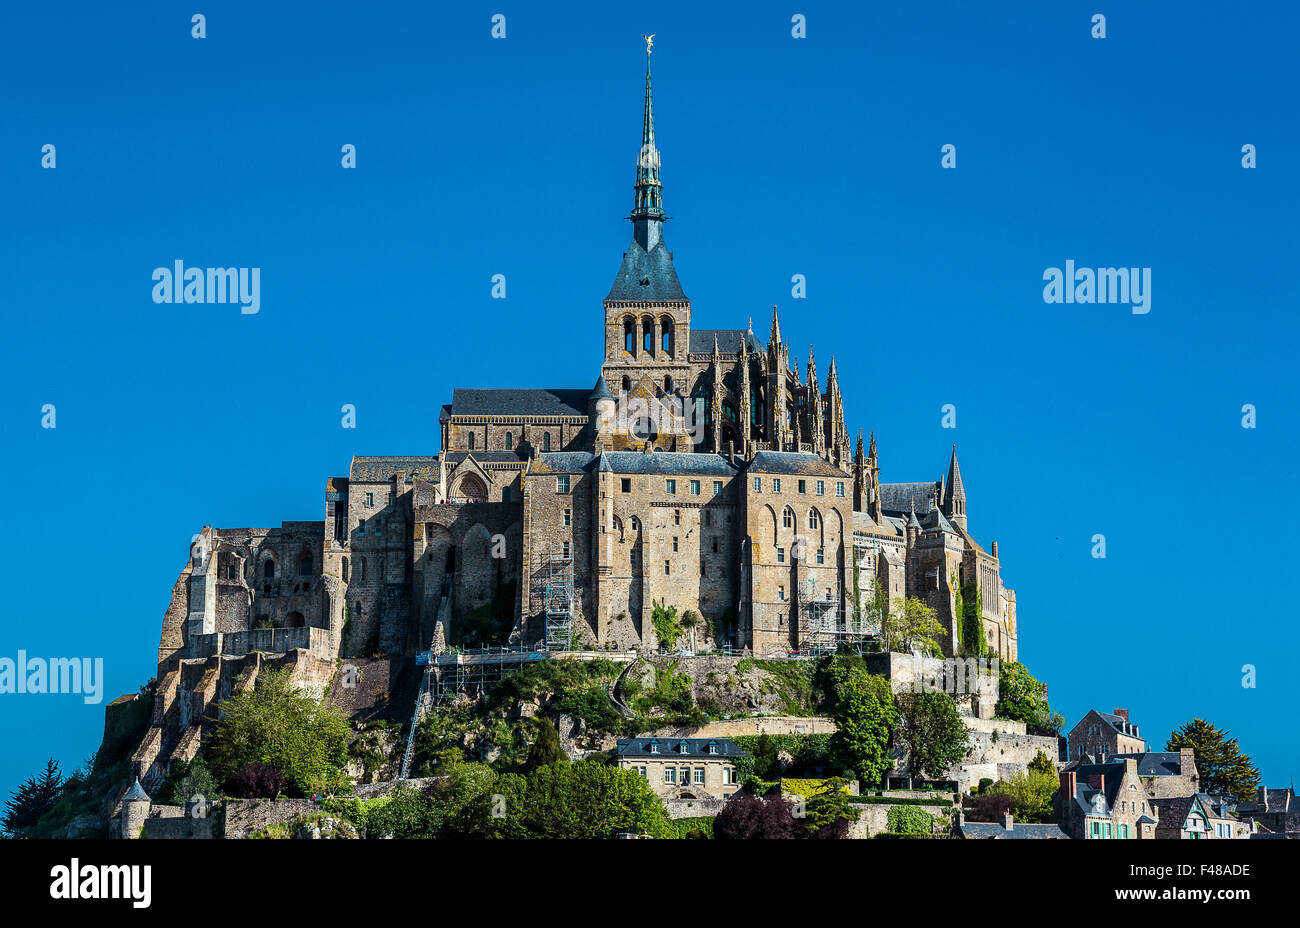 France, Normandy, Mont St Michel - Stock Image